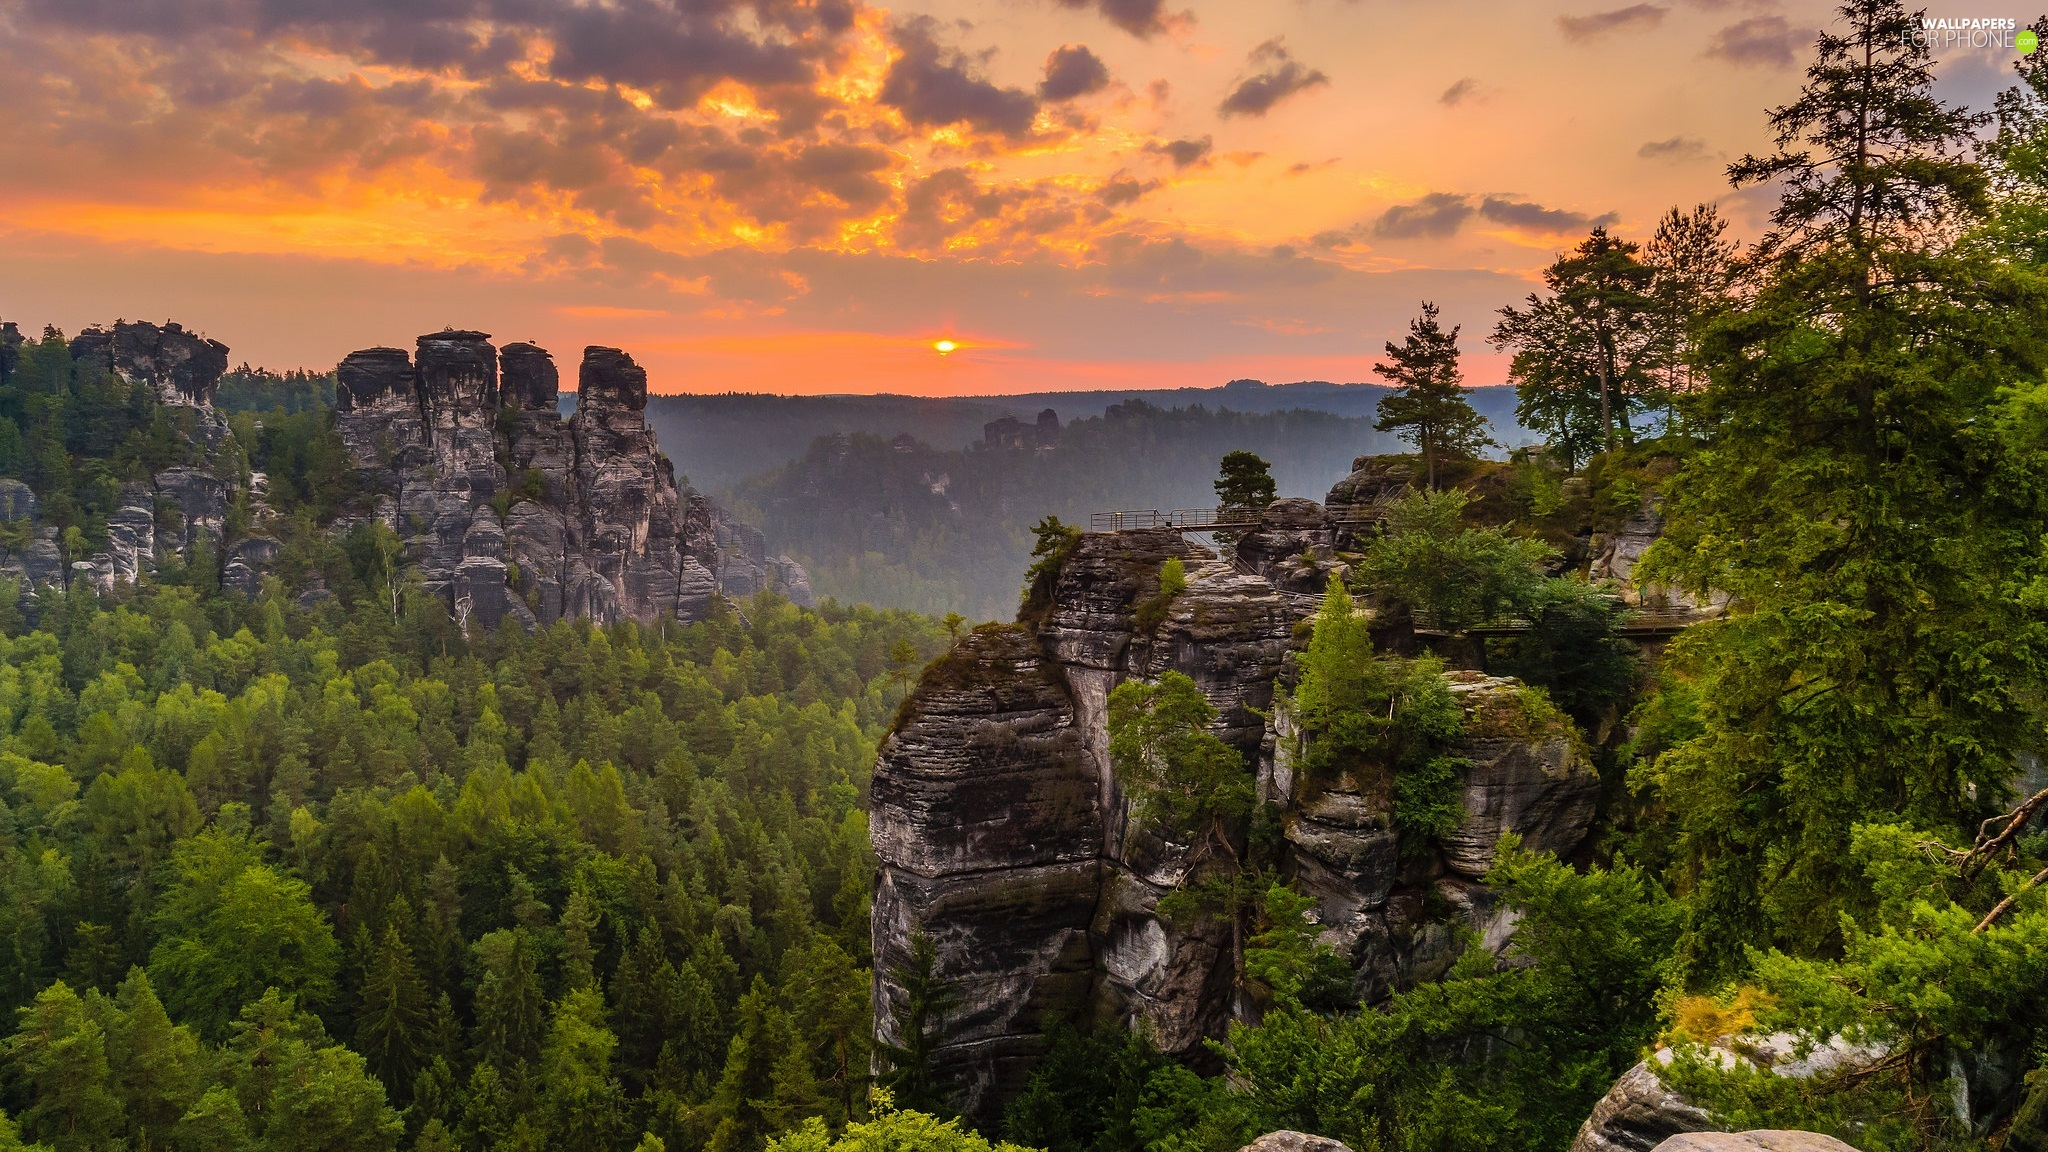 viewes, D???nsk? vrchovina, Saxon Switzerland National Park, trees, rocks, Great Sunsets, Germany